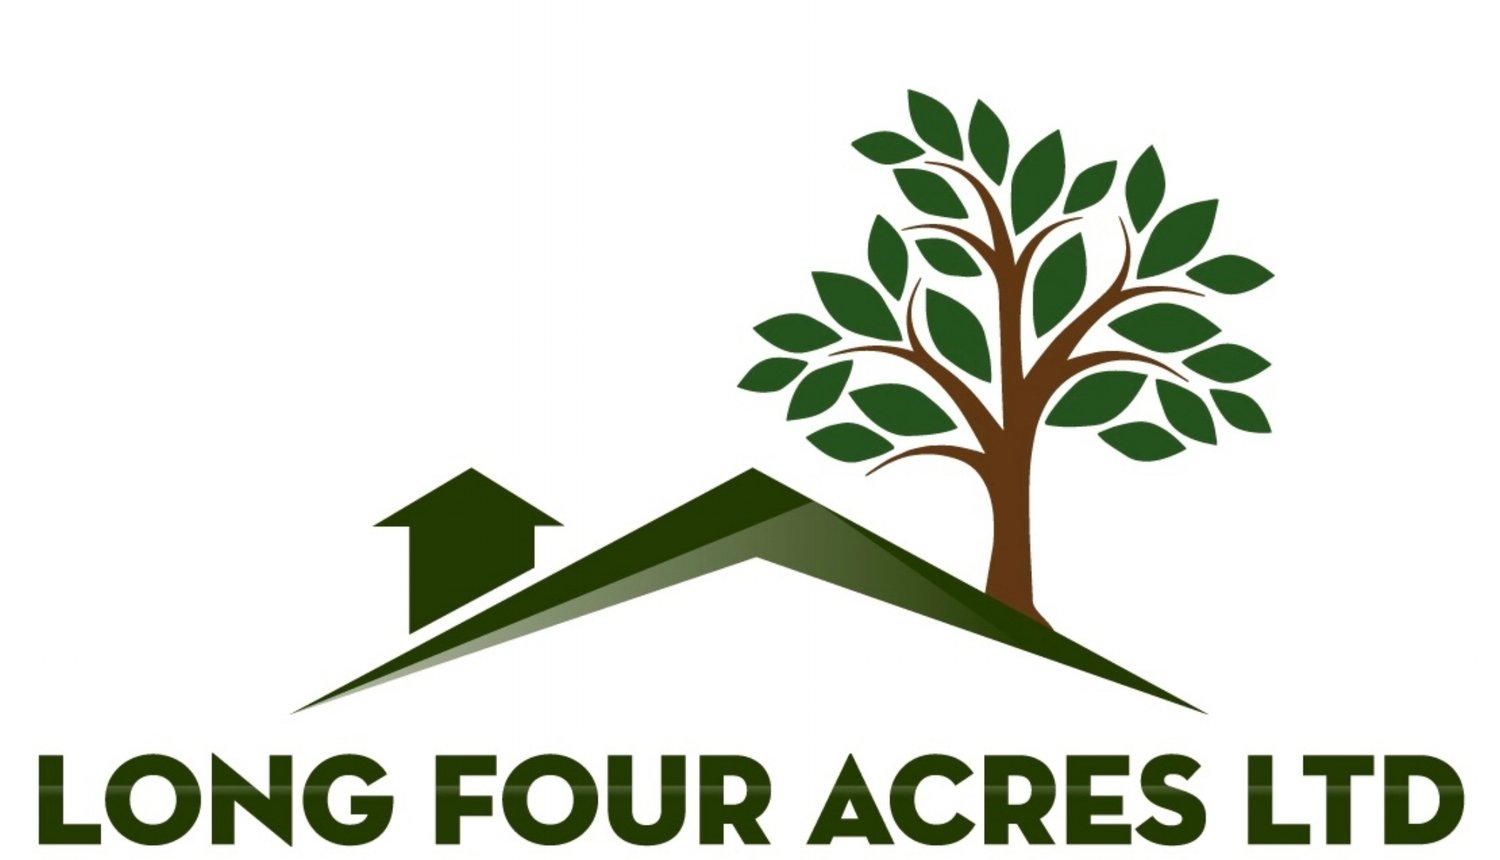 Long Four Acres